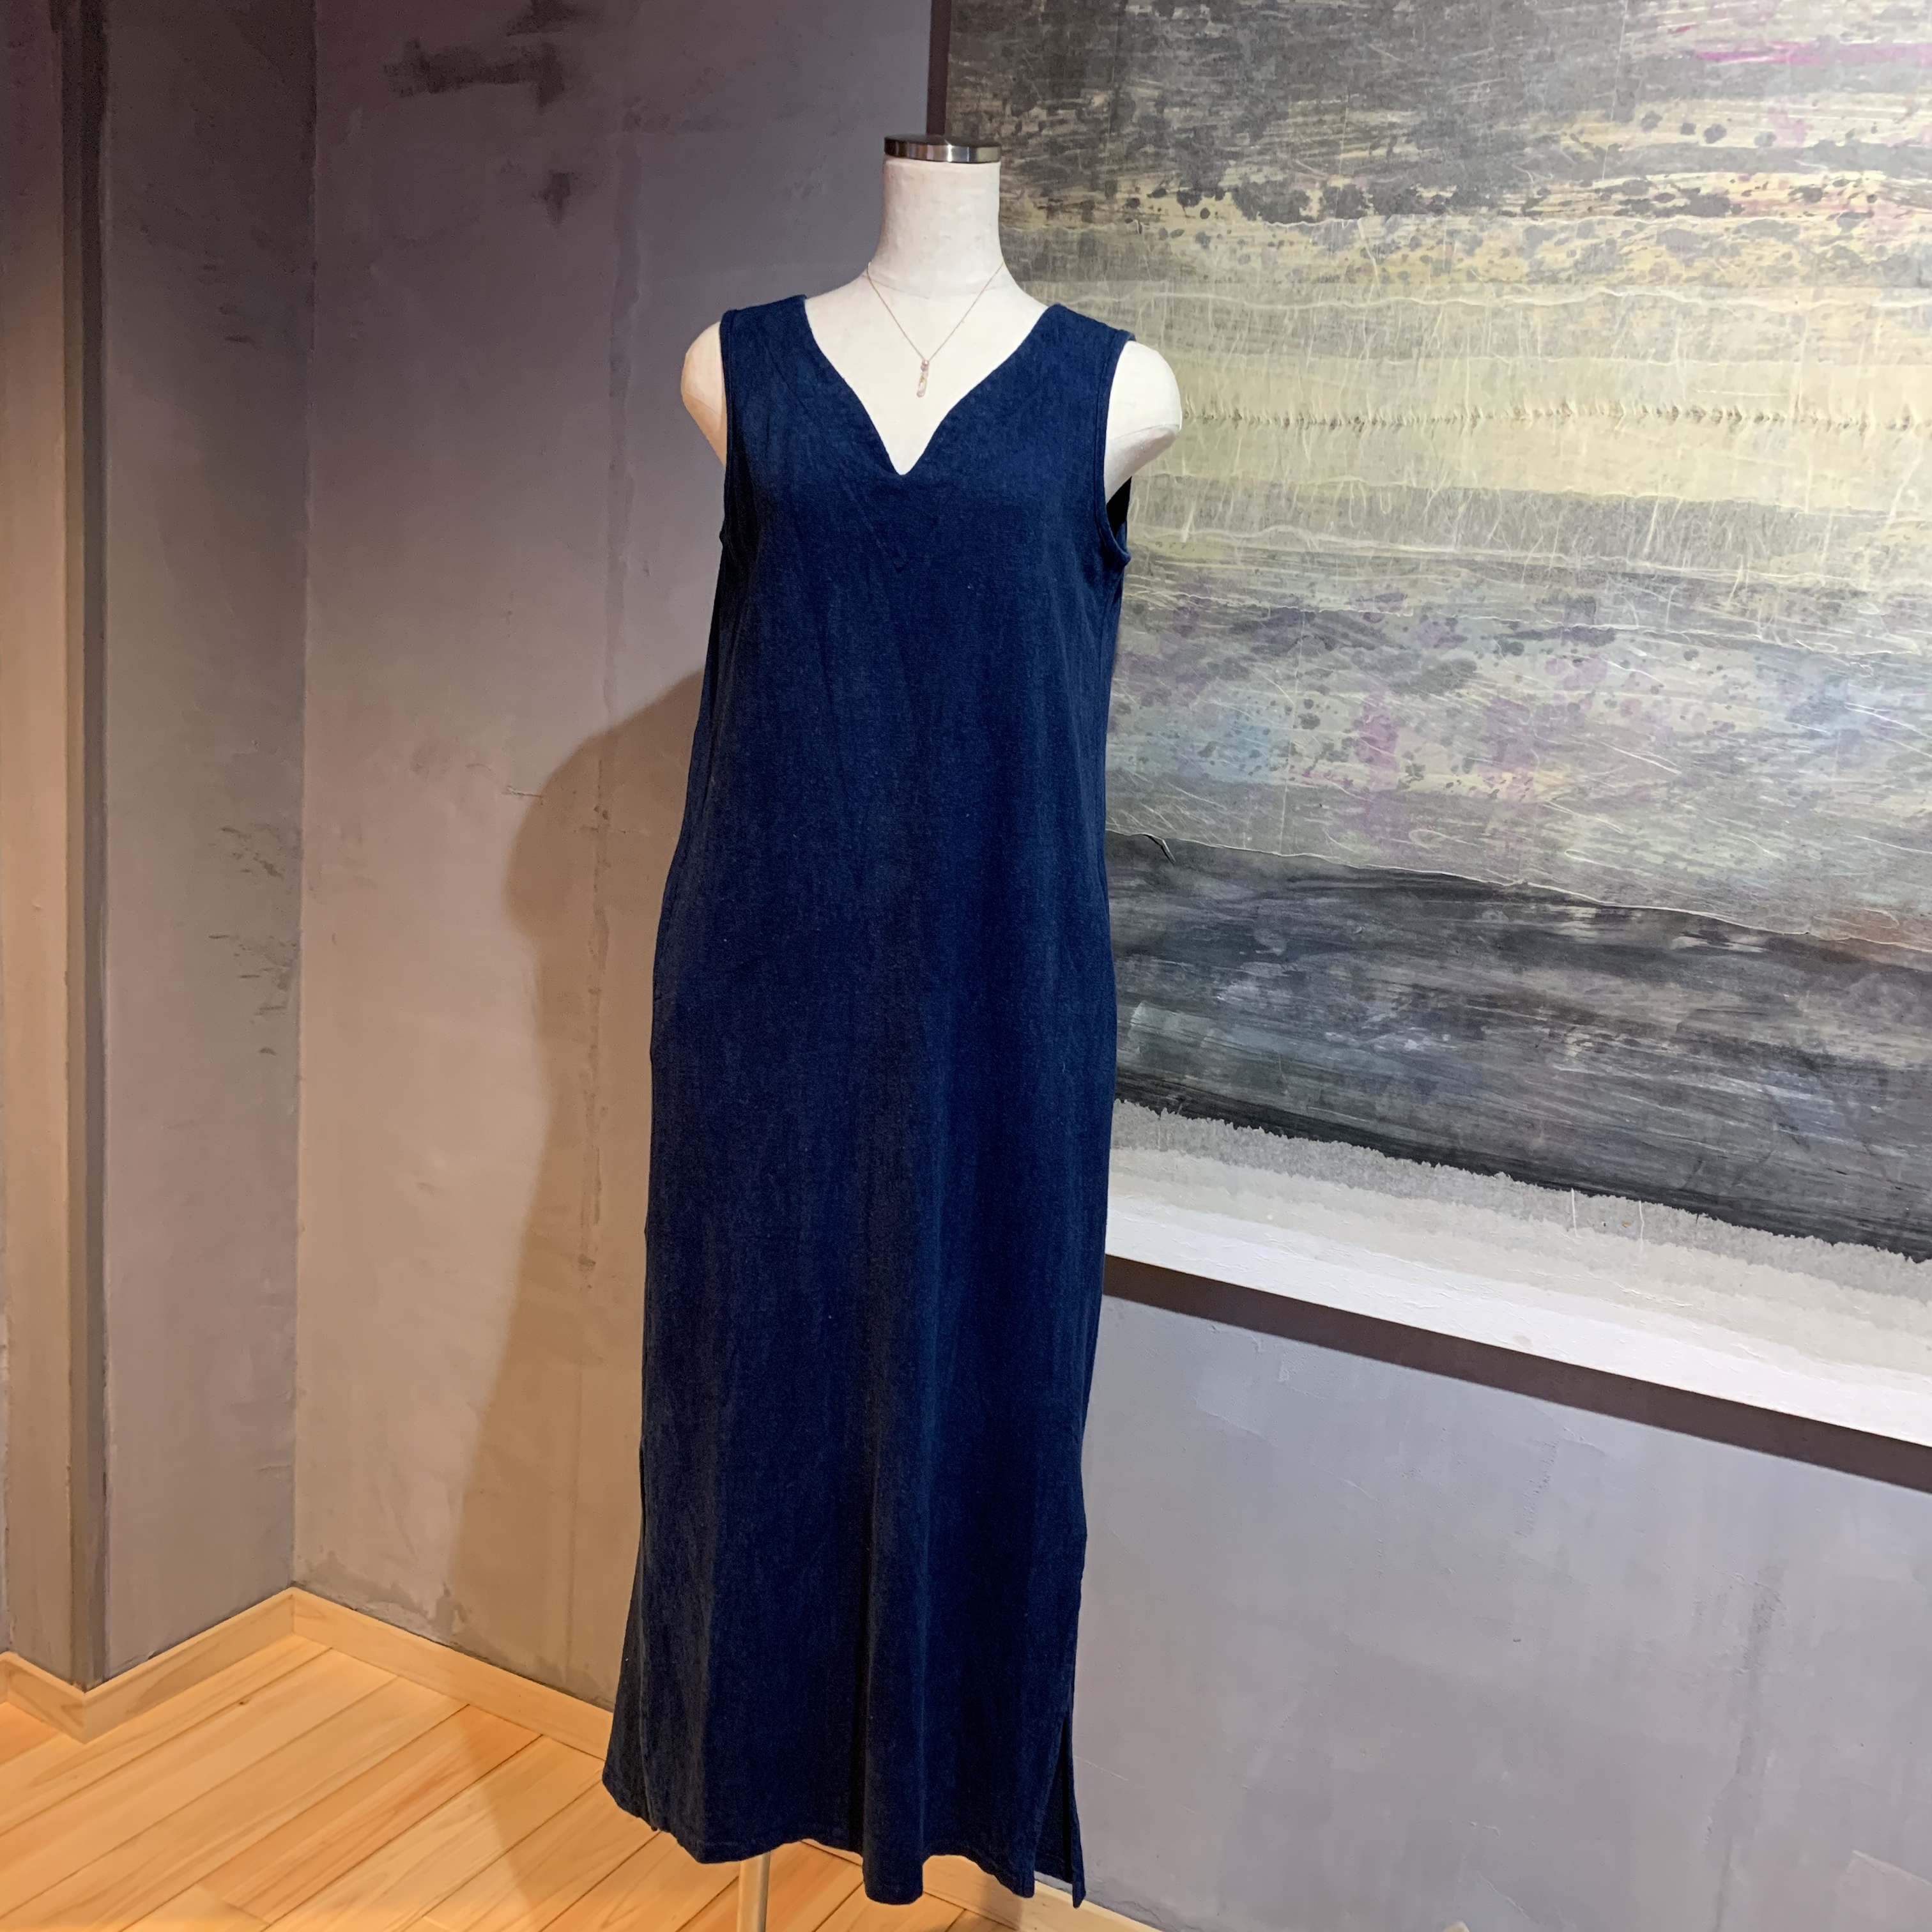 【先行販売価格】∞One Piece Dress∞ Hemp/Cotton/Linen Jersey